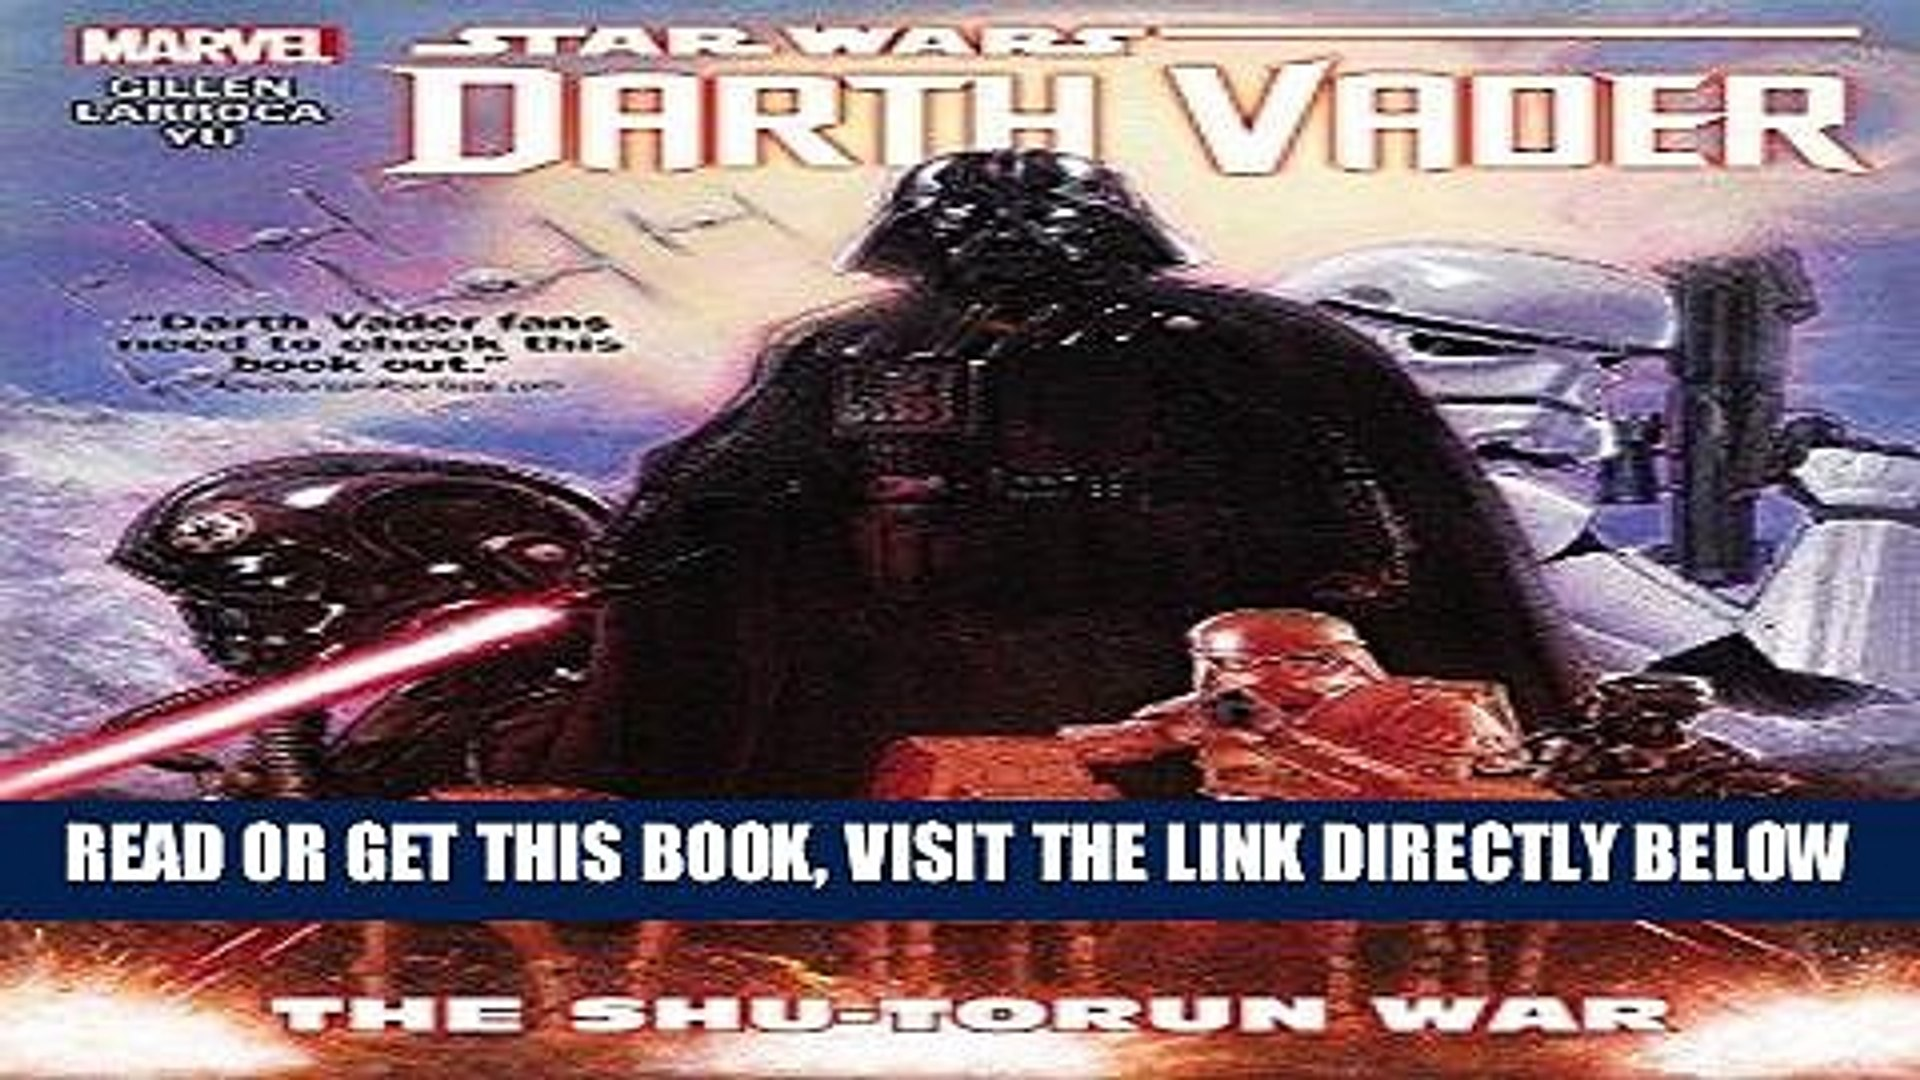 [EBOOK] DOWNLOAD Star Wars: Darth Vader Vol. 3: The Shu-Torun War (Star Wars (Marvel)) GET NOW